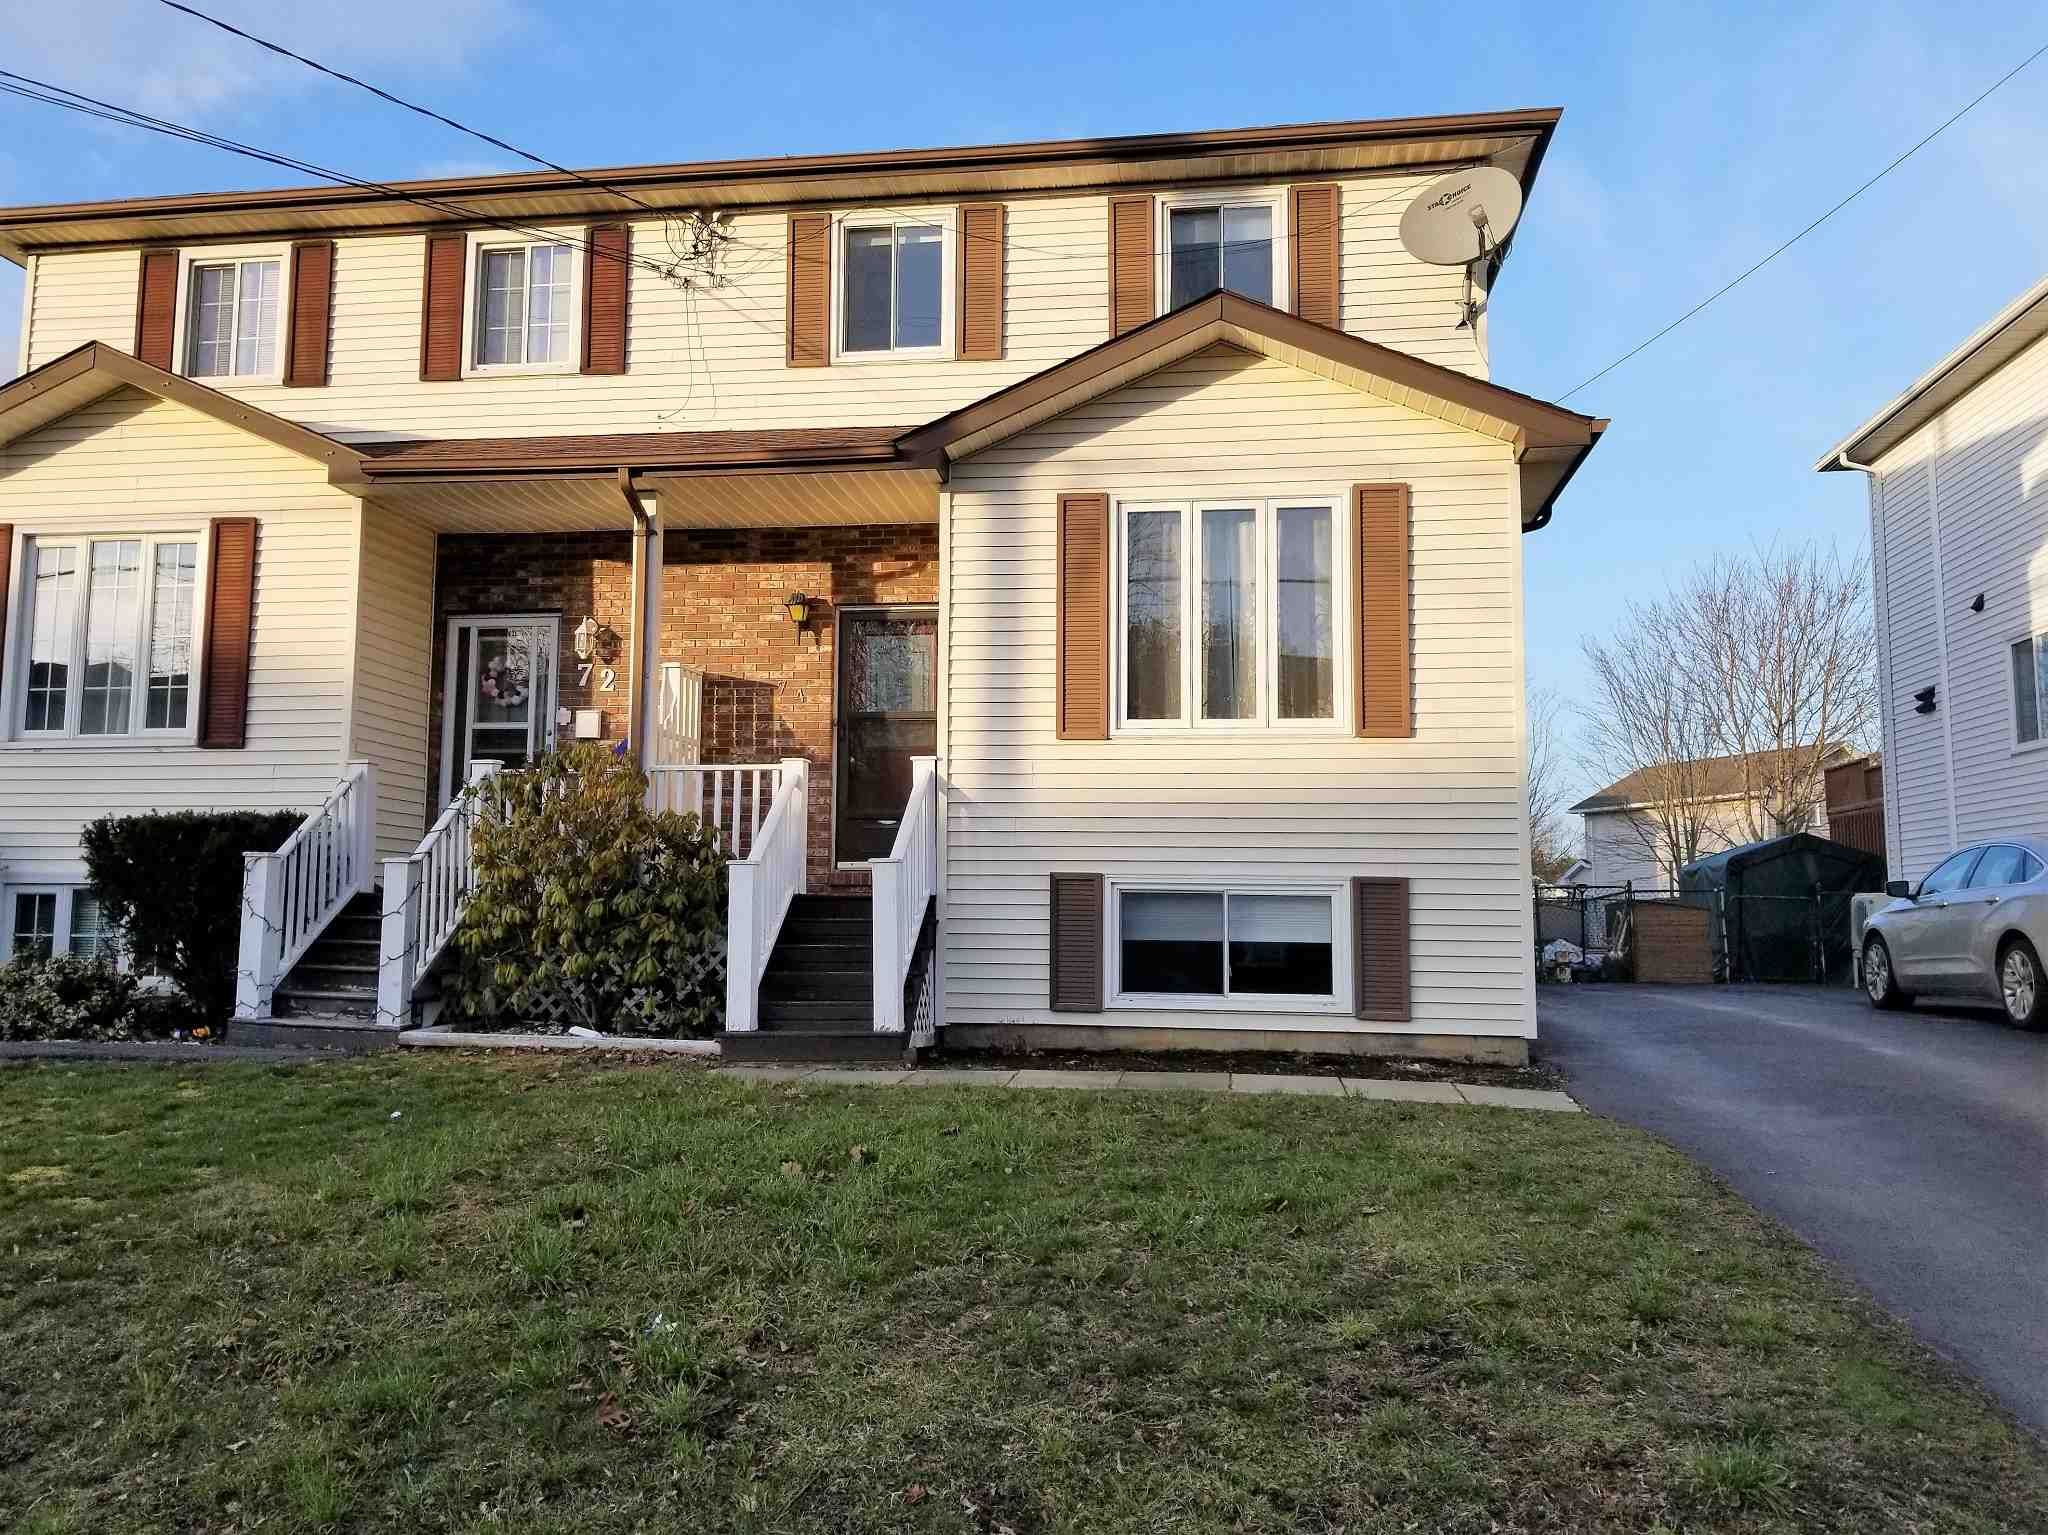 Main Photo: 74 Hartlen Avenue in Halifax: 7-Spryfield Residential for sale (Halifax-Dartmouth)  : MLS®# 202107442